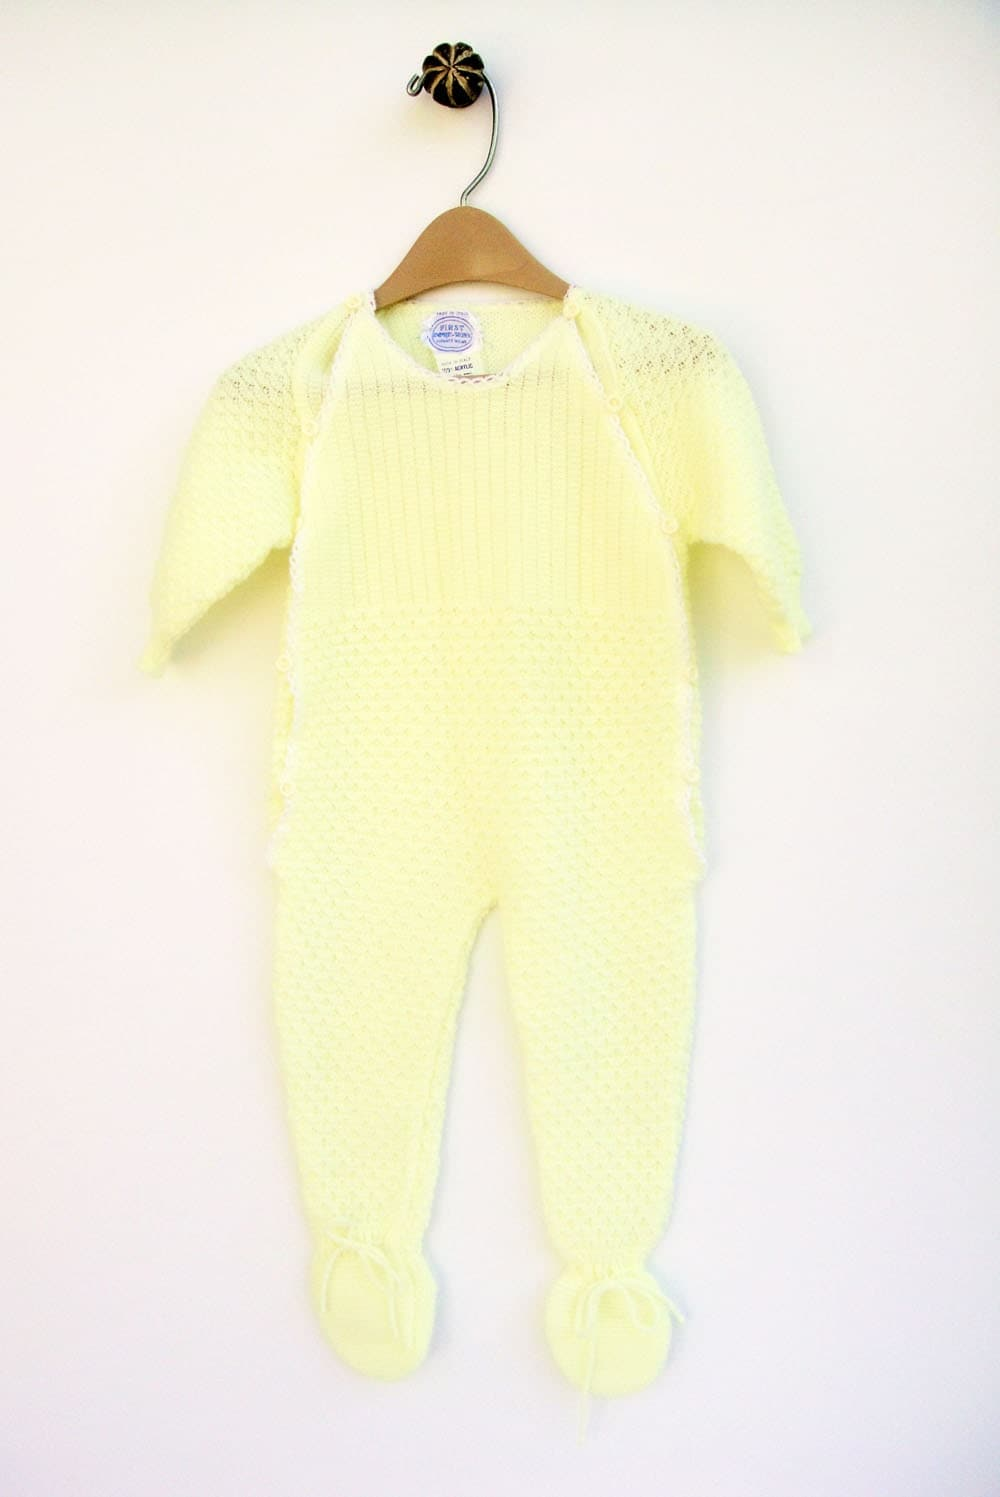 Sweater Onesie Yellow Baby Clothes 3 Months 1950's